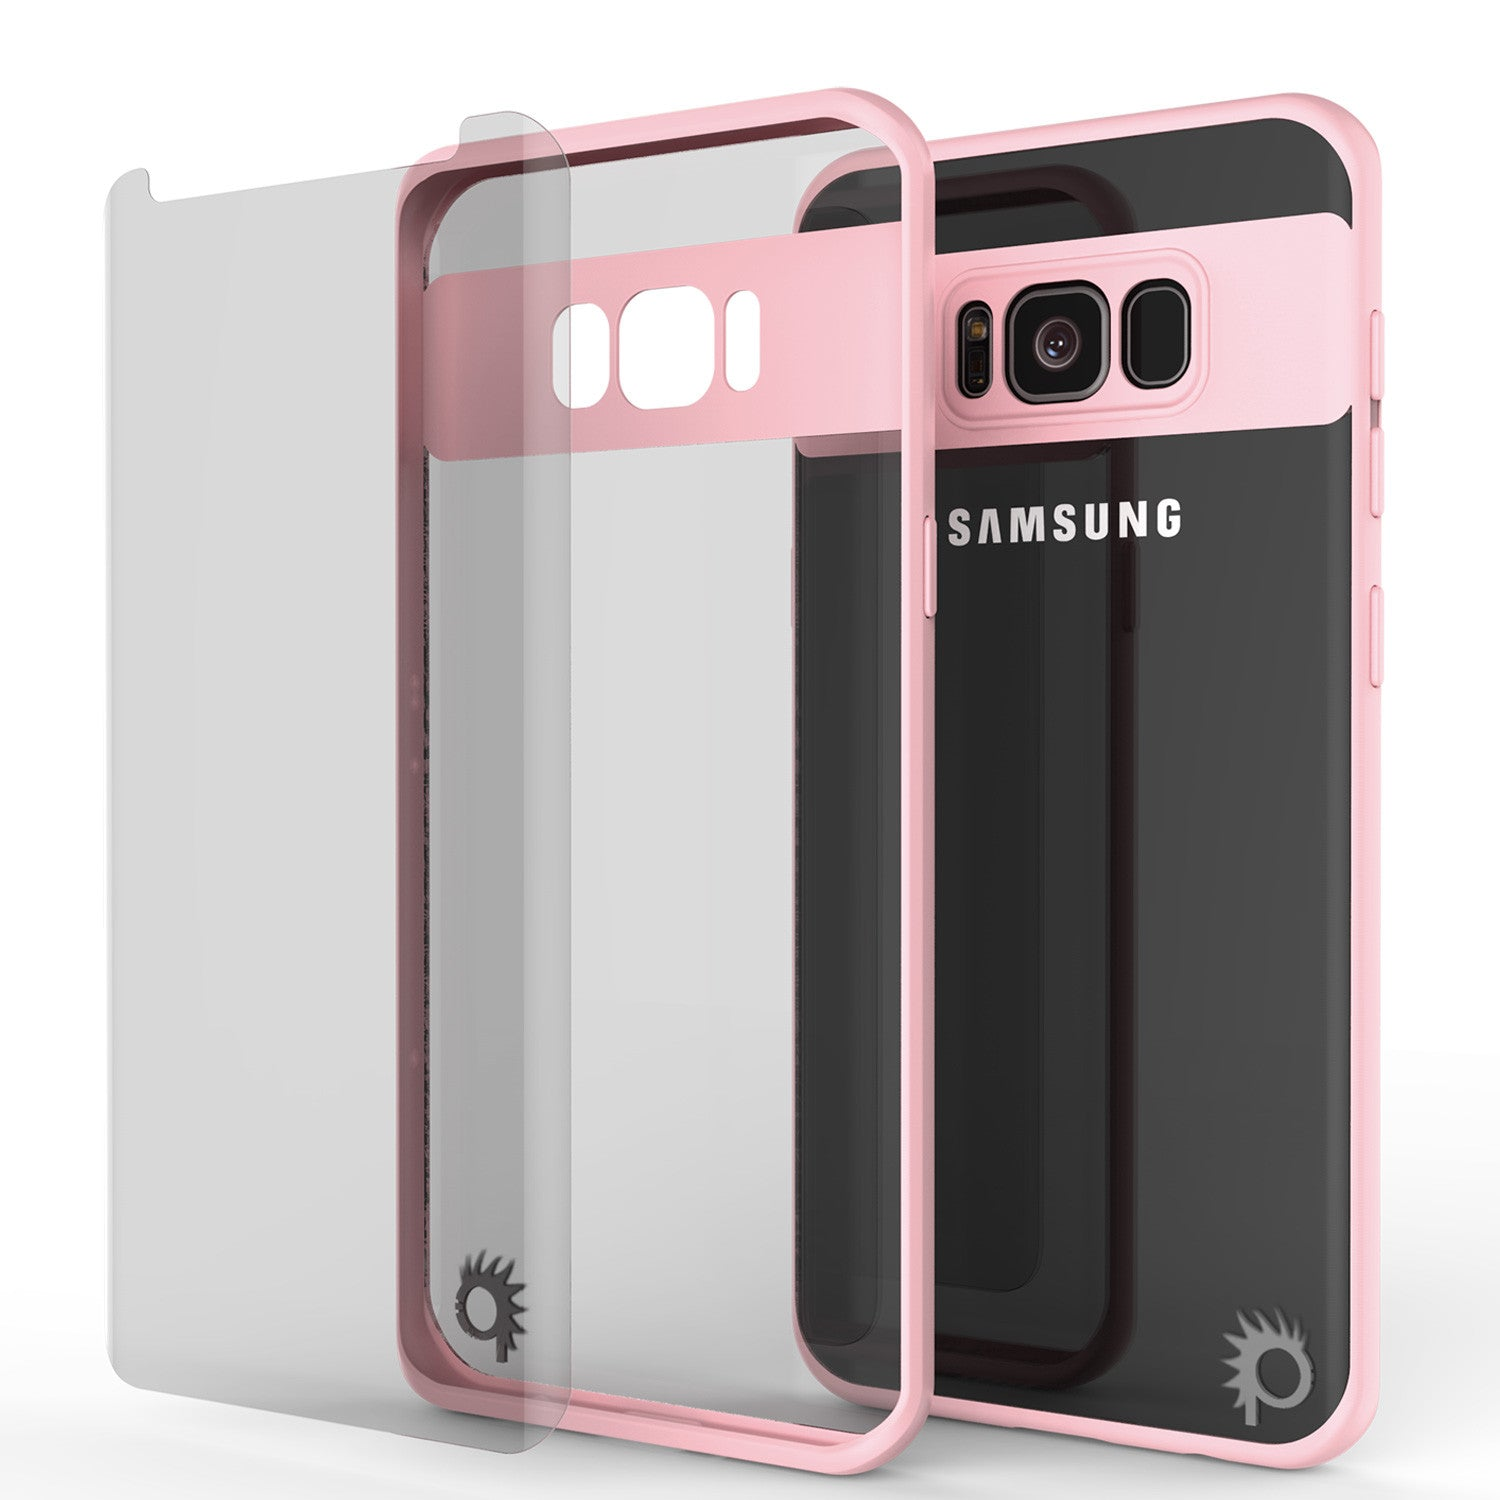 Galaxy S8 Case, Punkcase [MASK Series] [PINK] Full Body Hybrid Dual Layer TPU Cover W/ Protective PUNKSHIELD Screen Protector